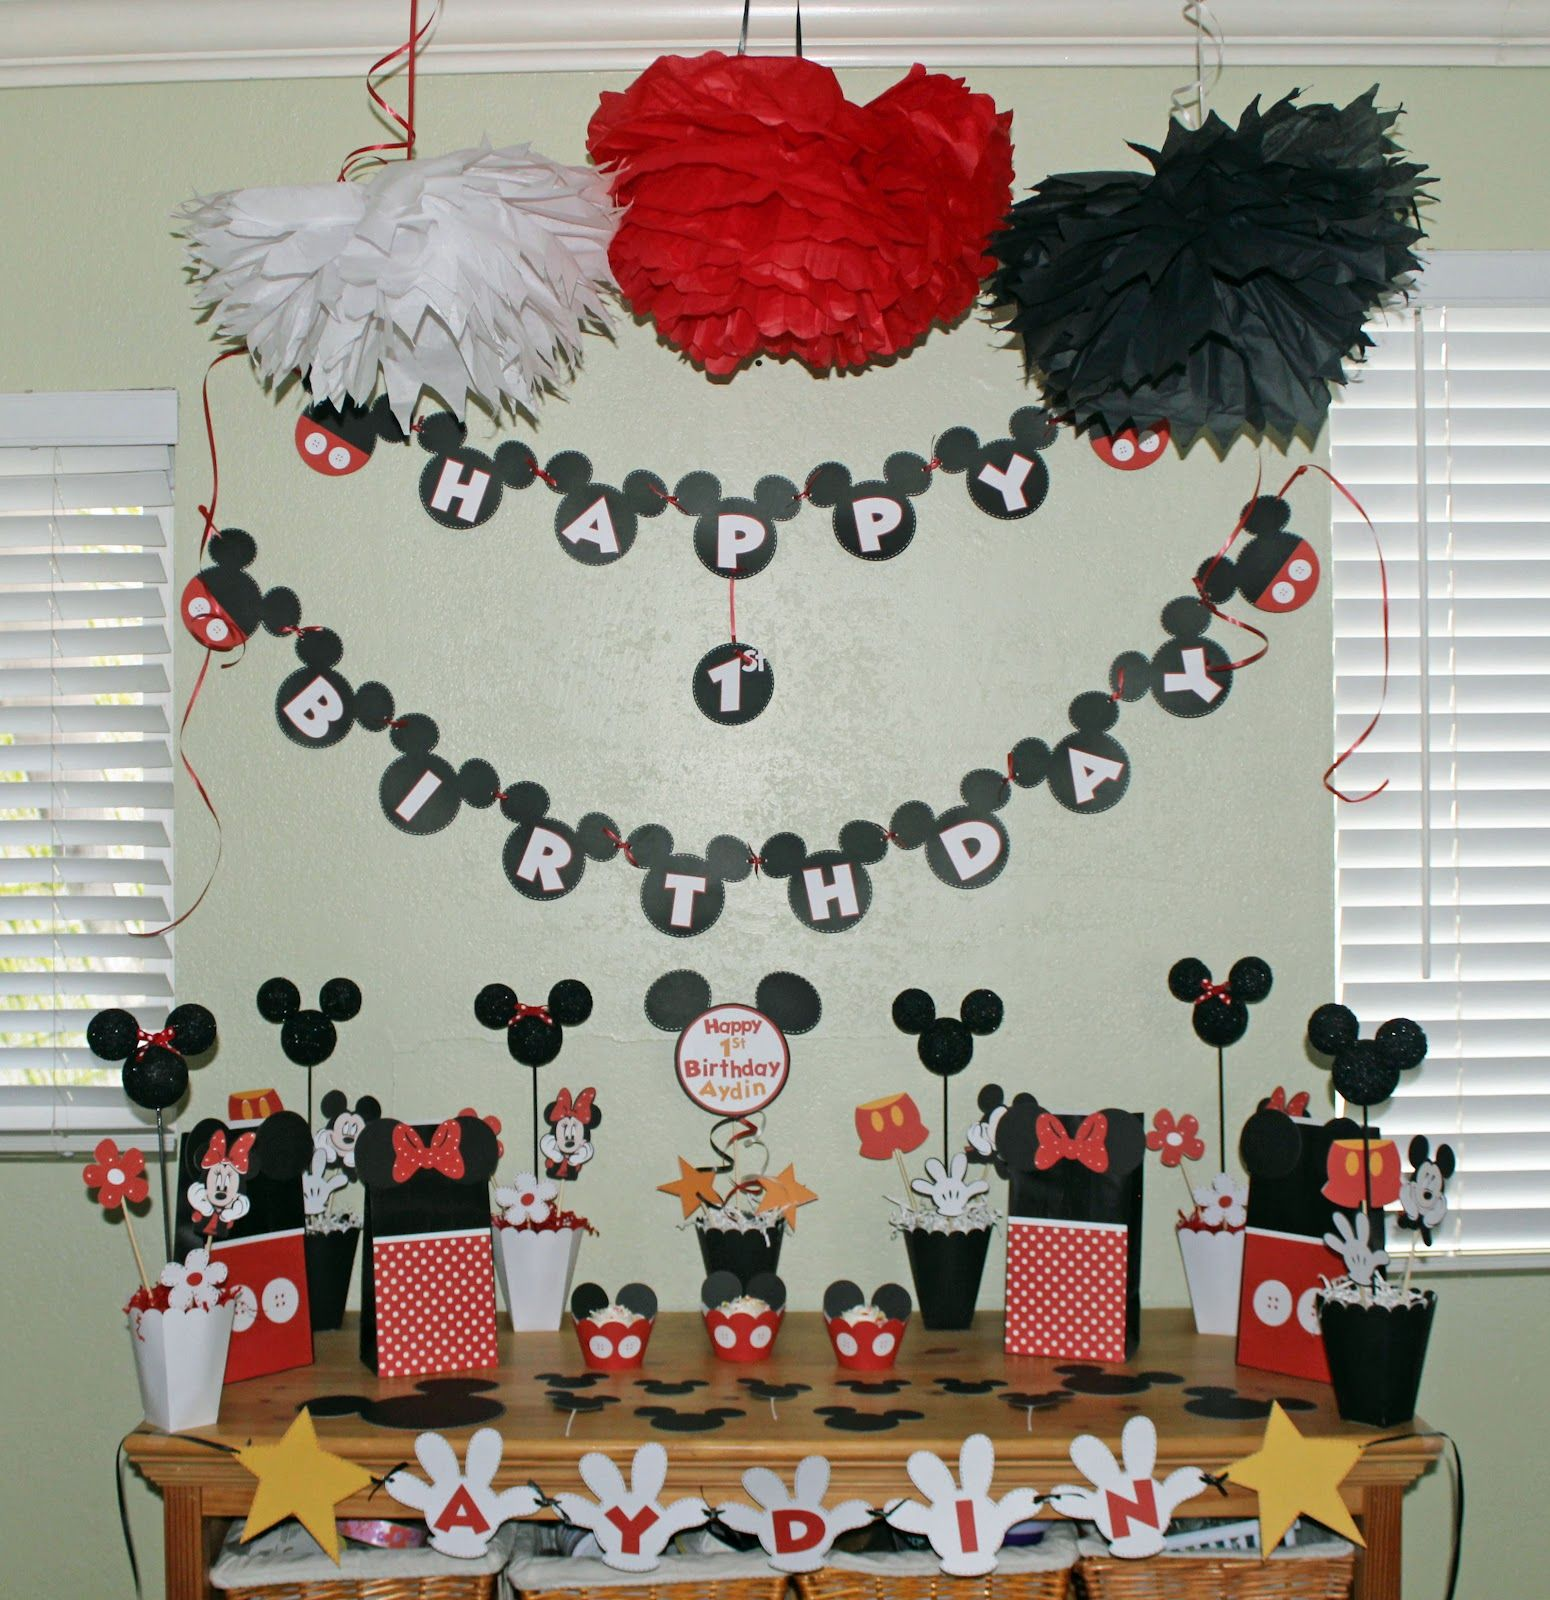 was asked to create a mickey mouse themed party for a 1st